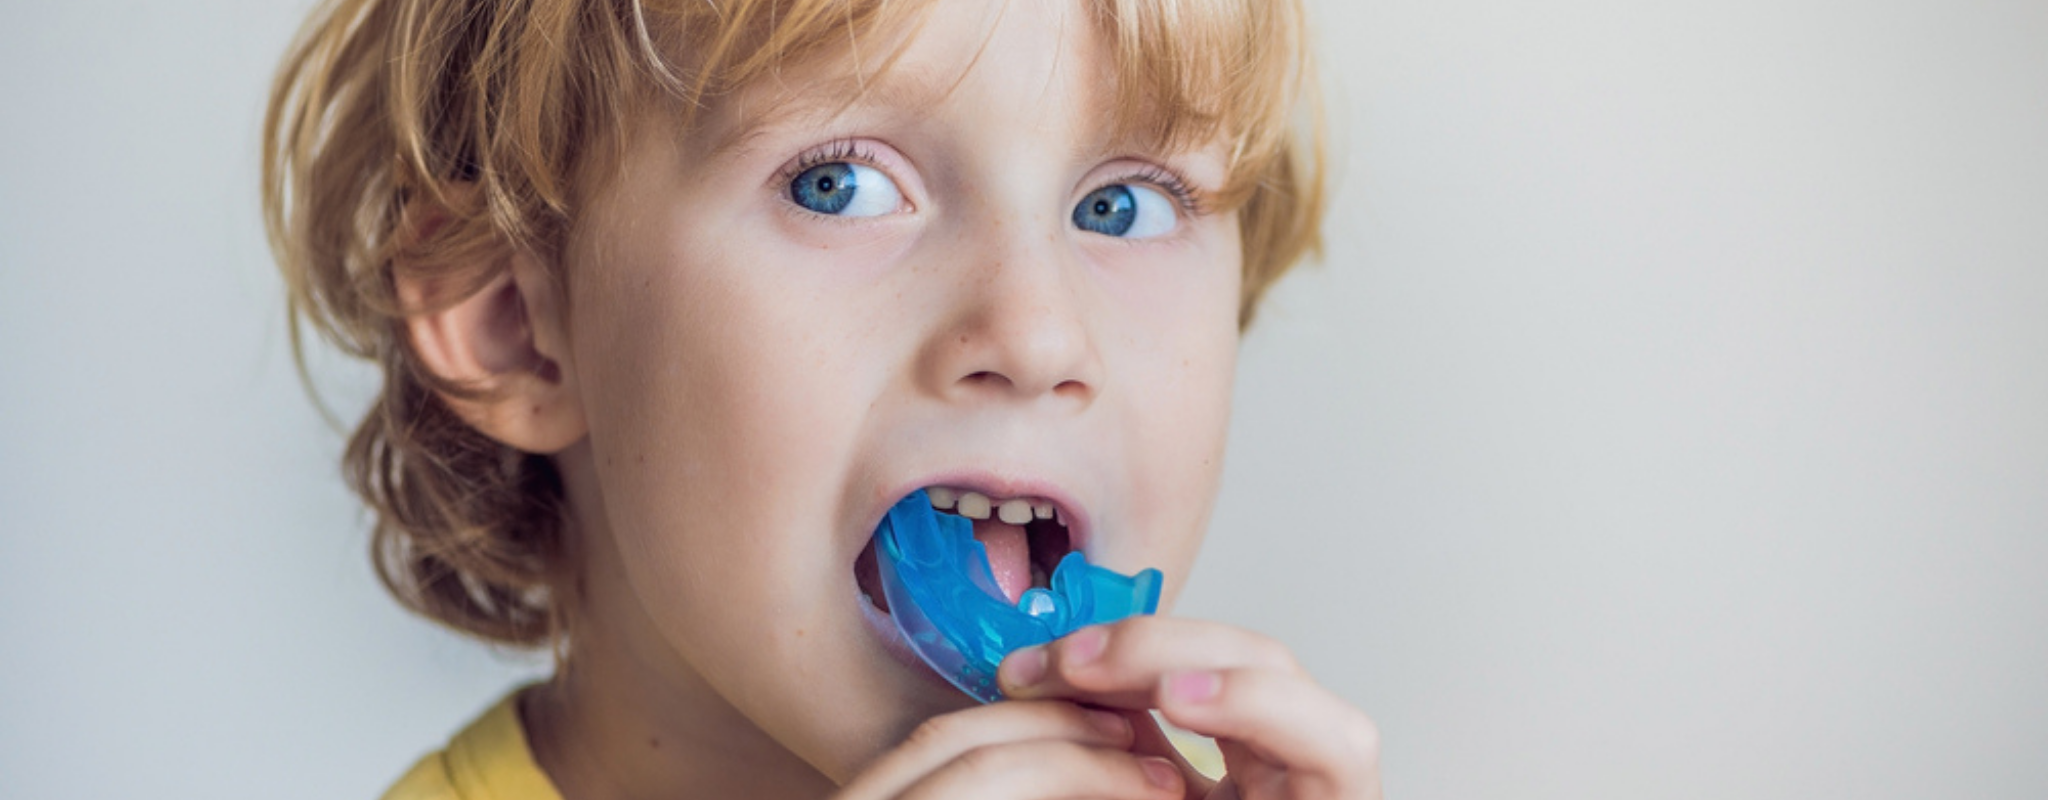 Is a Night Guard and Mouth Guard the Same Thing?